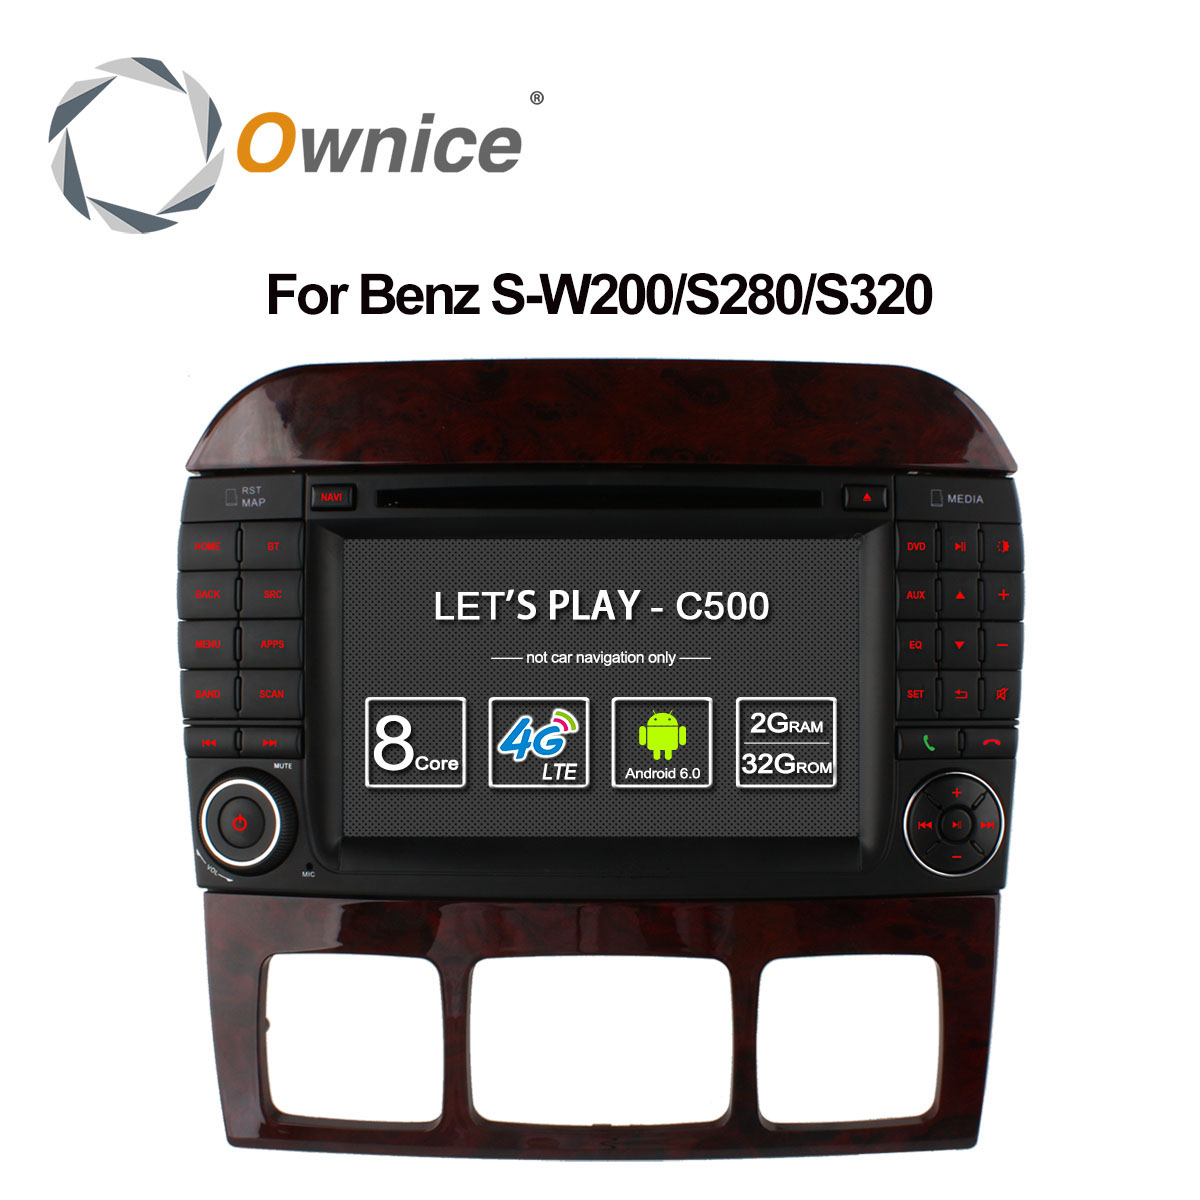 Ownice c500 8 core android 6 0 car dvd player for mercedes for Mercedes benz c500 price